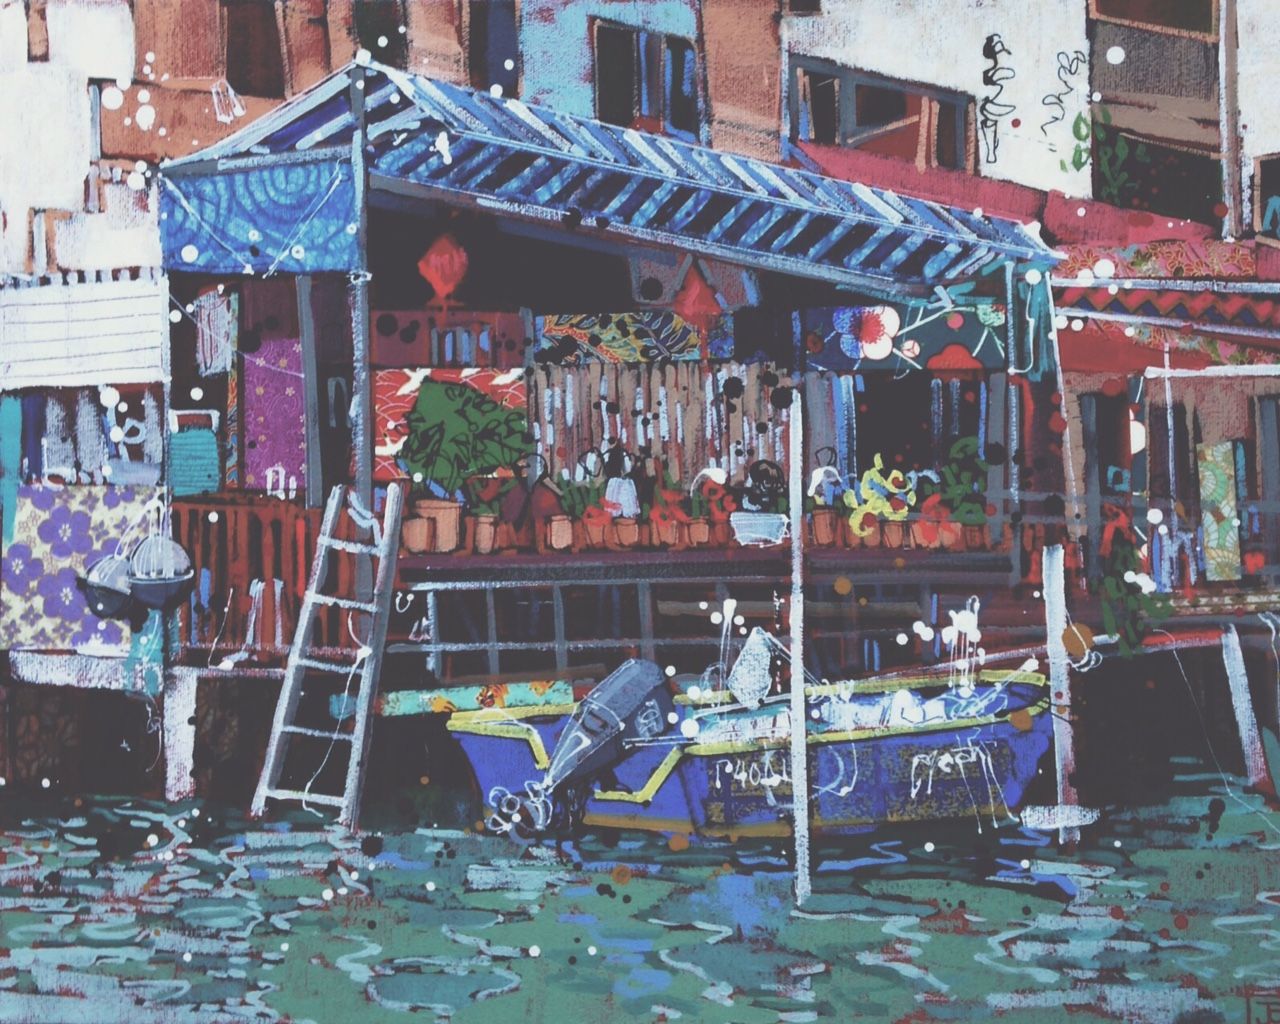 the entire piece!  Tai O Village on Stilts - one of China's many fascinations, mixed media on canvas, 16x20(in), 2016